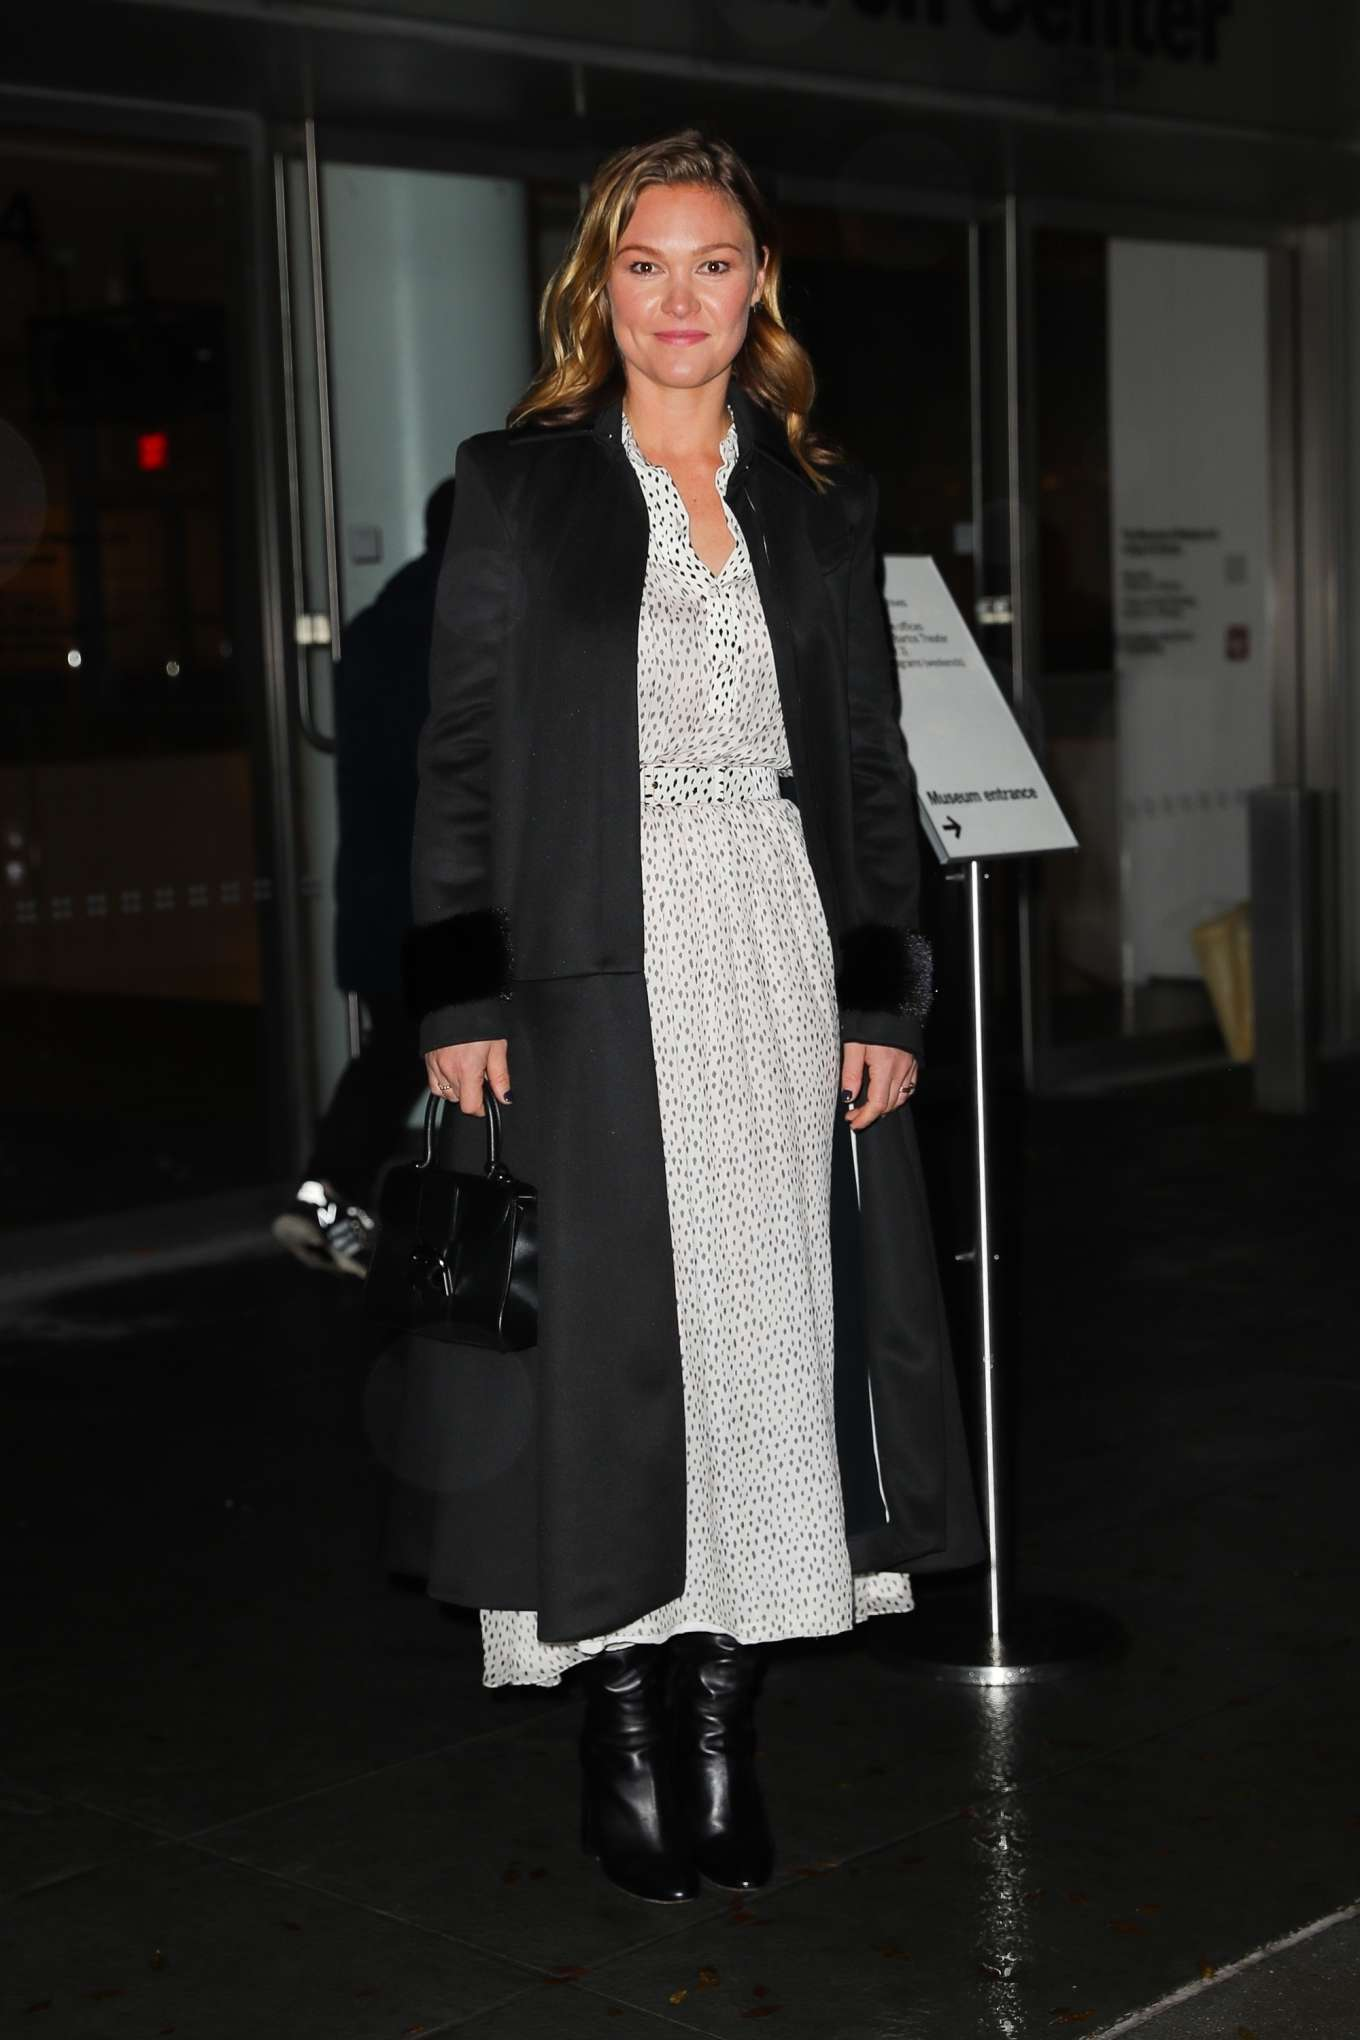 Julia Stiles 2019 : Julia Stiles – Leaving the Hustlers in New York-06